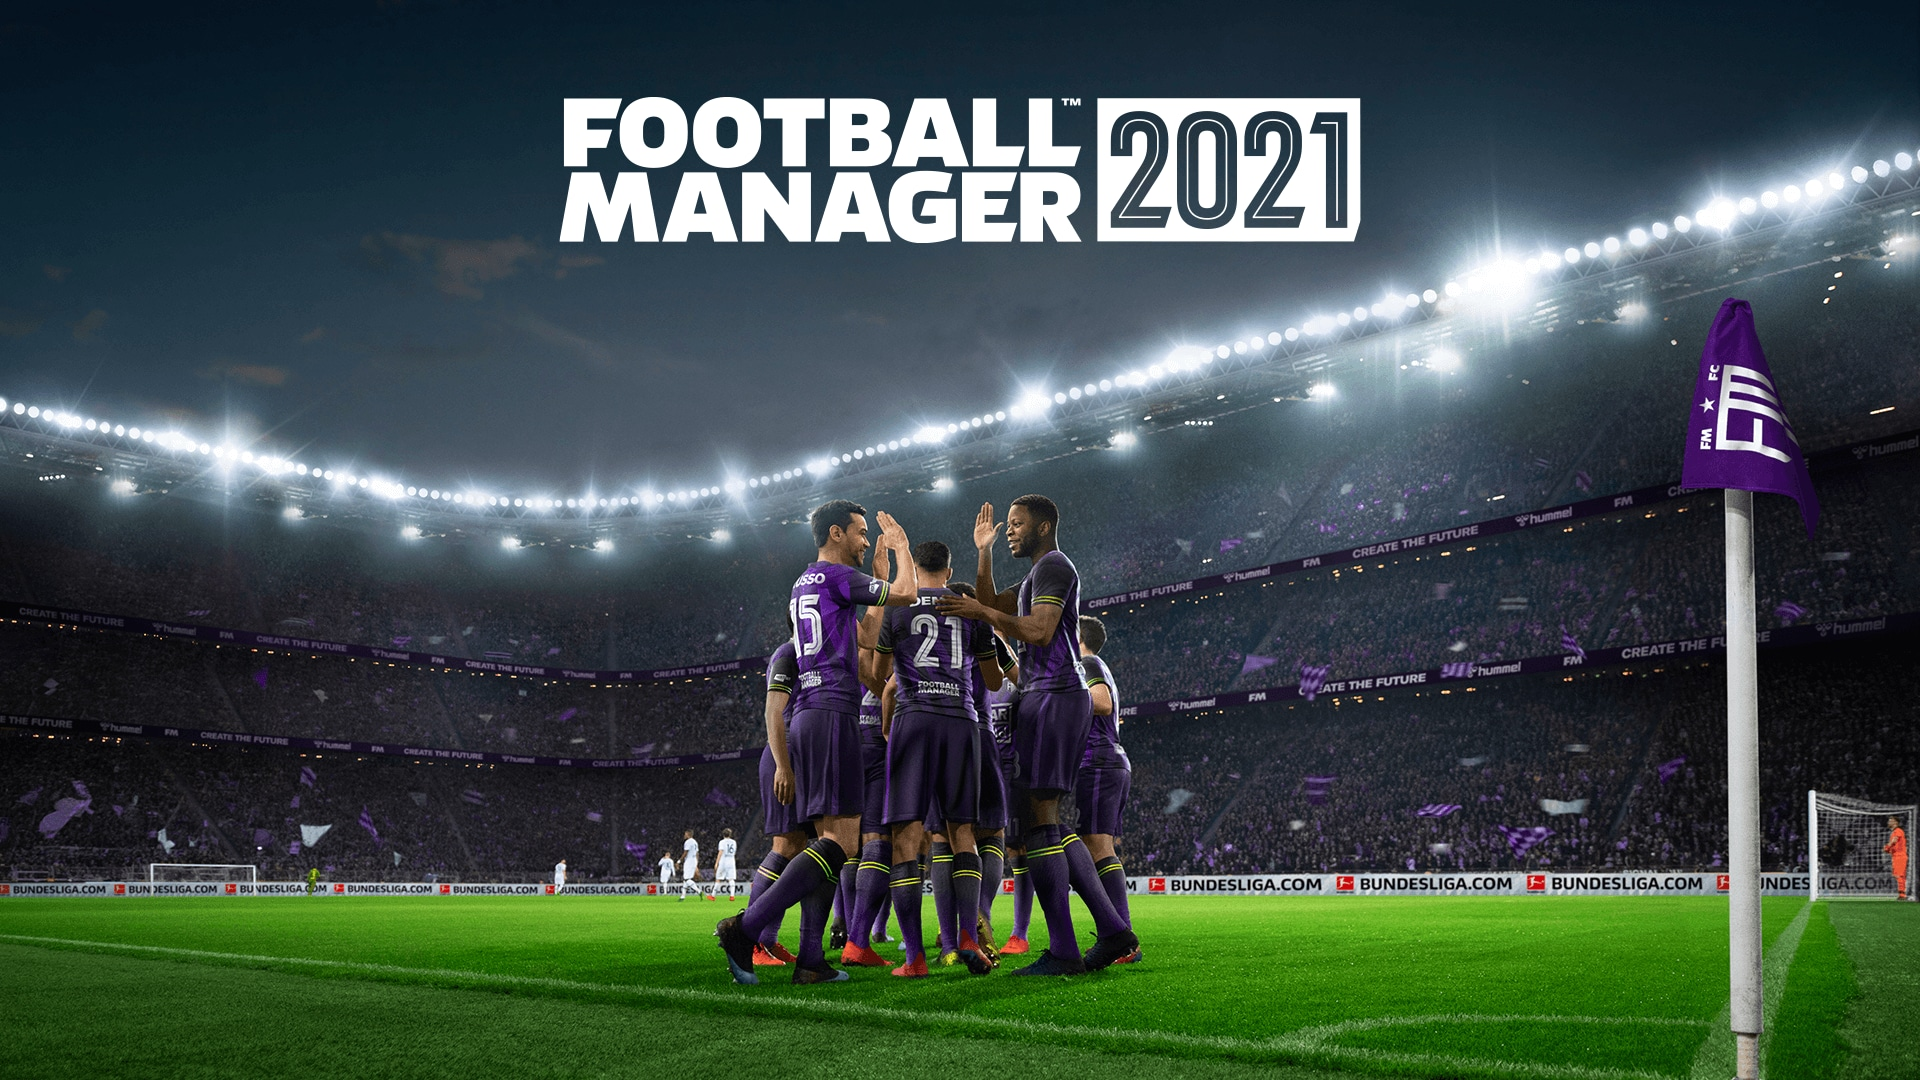 Play Football Manager 2021 on Epic Games Store available launch